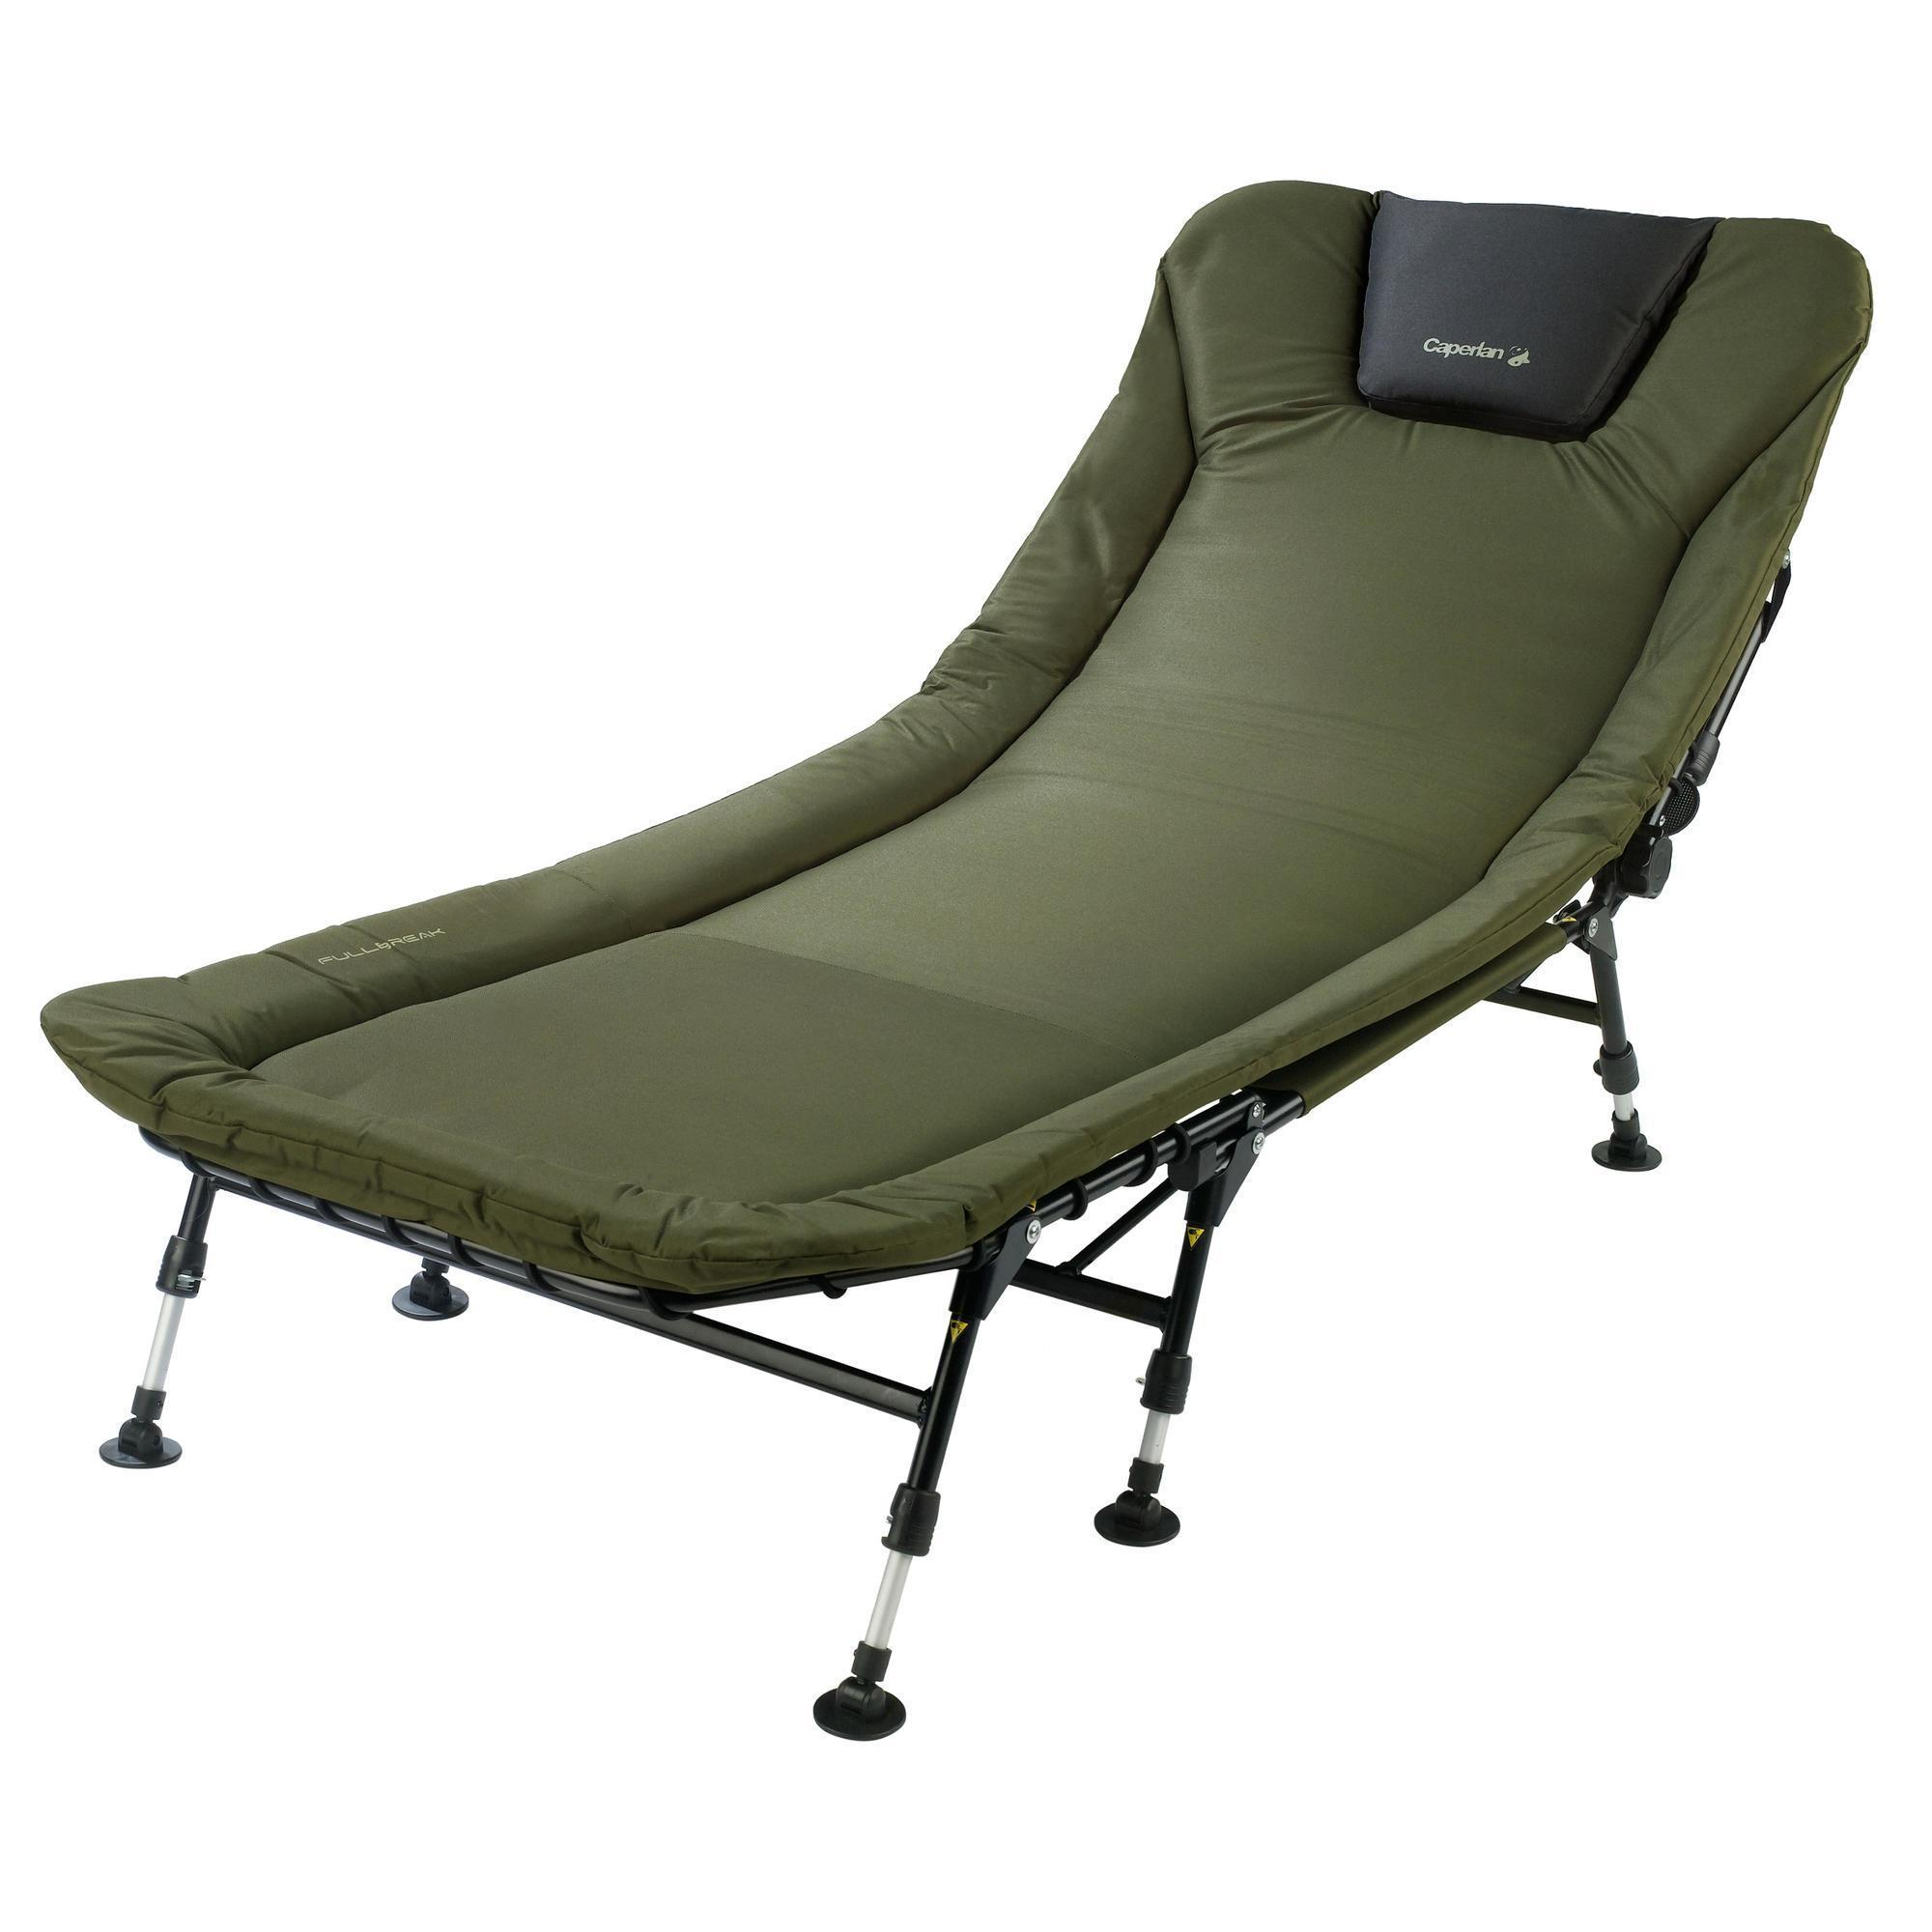 fishing chair bed reviews seat warmer for office fullbreak carp caperlan